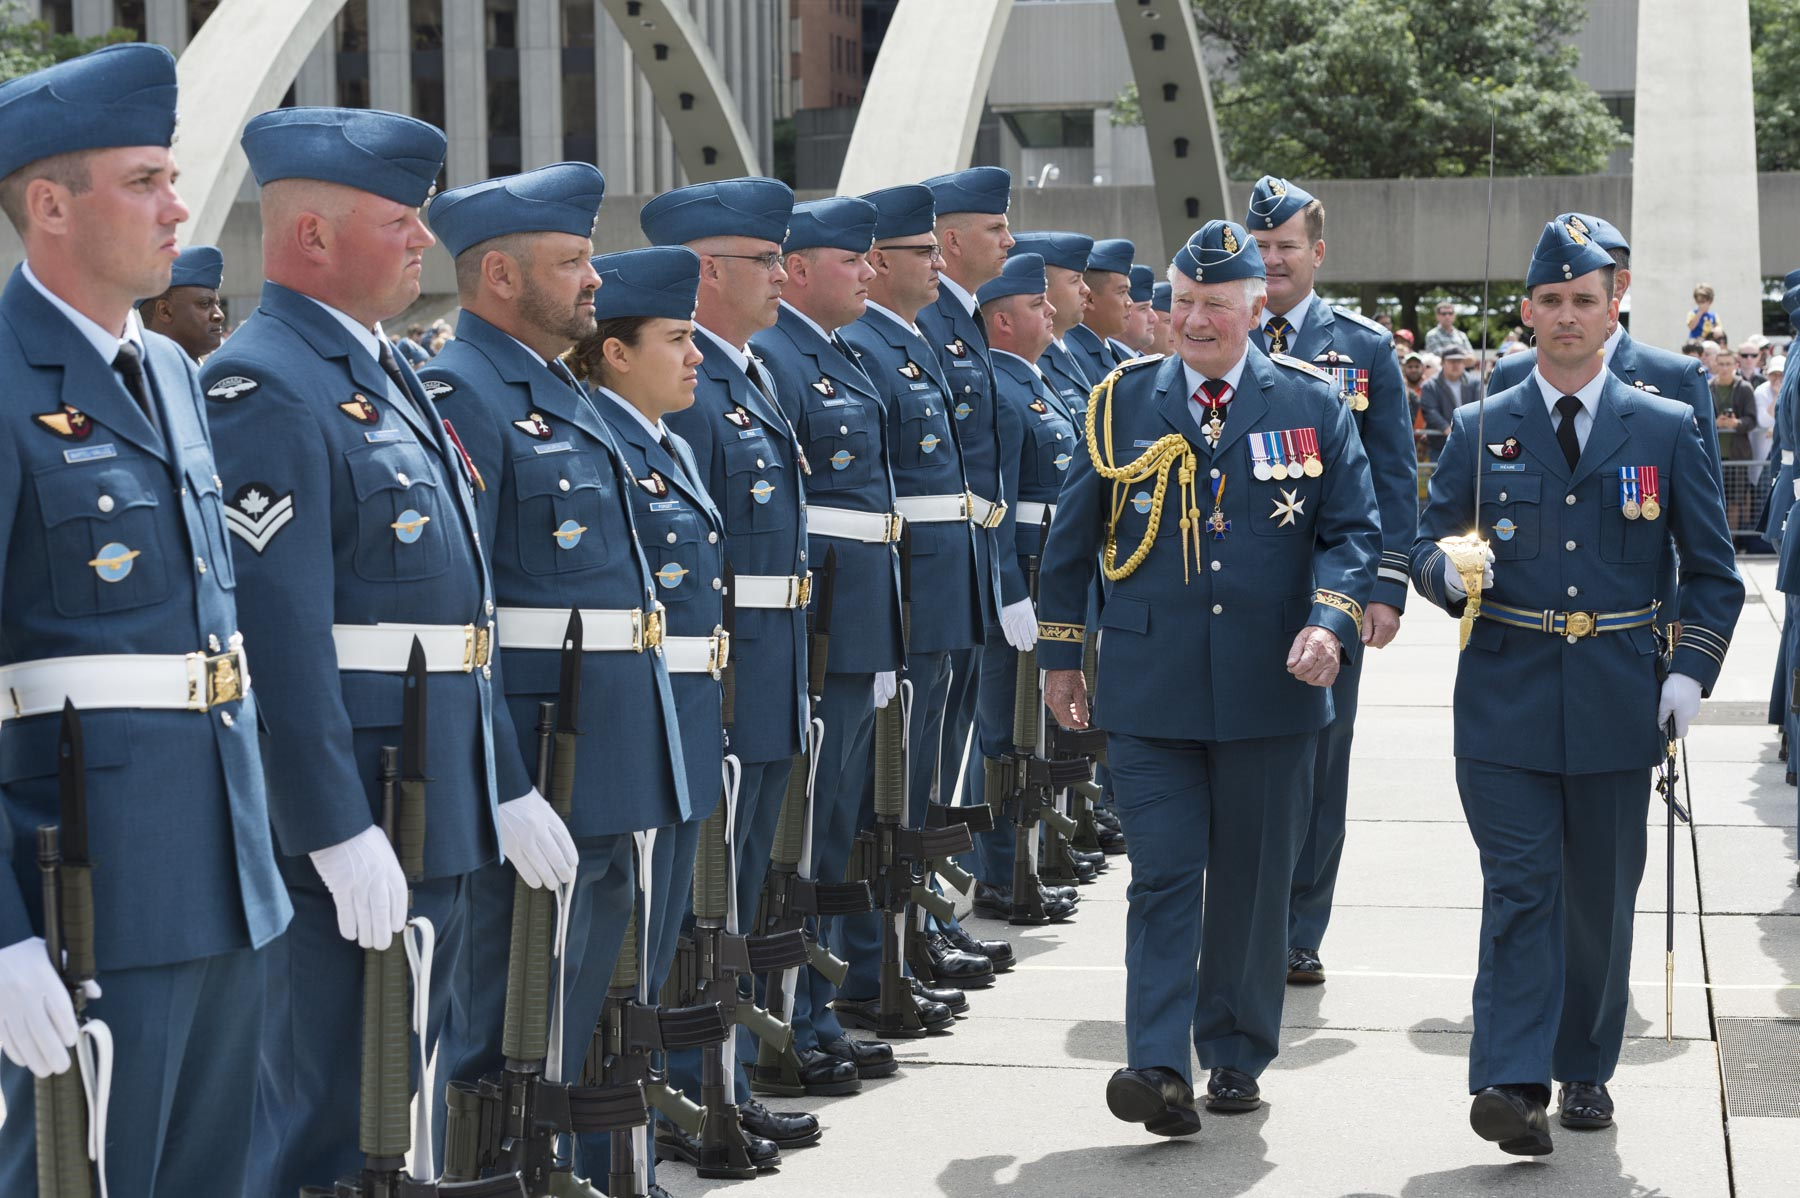 Before presenting the new Colours, His Excellency reviewed the parade.